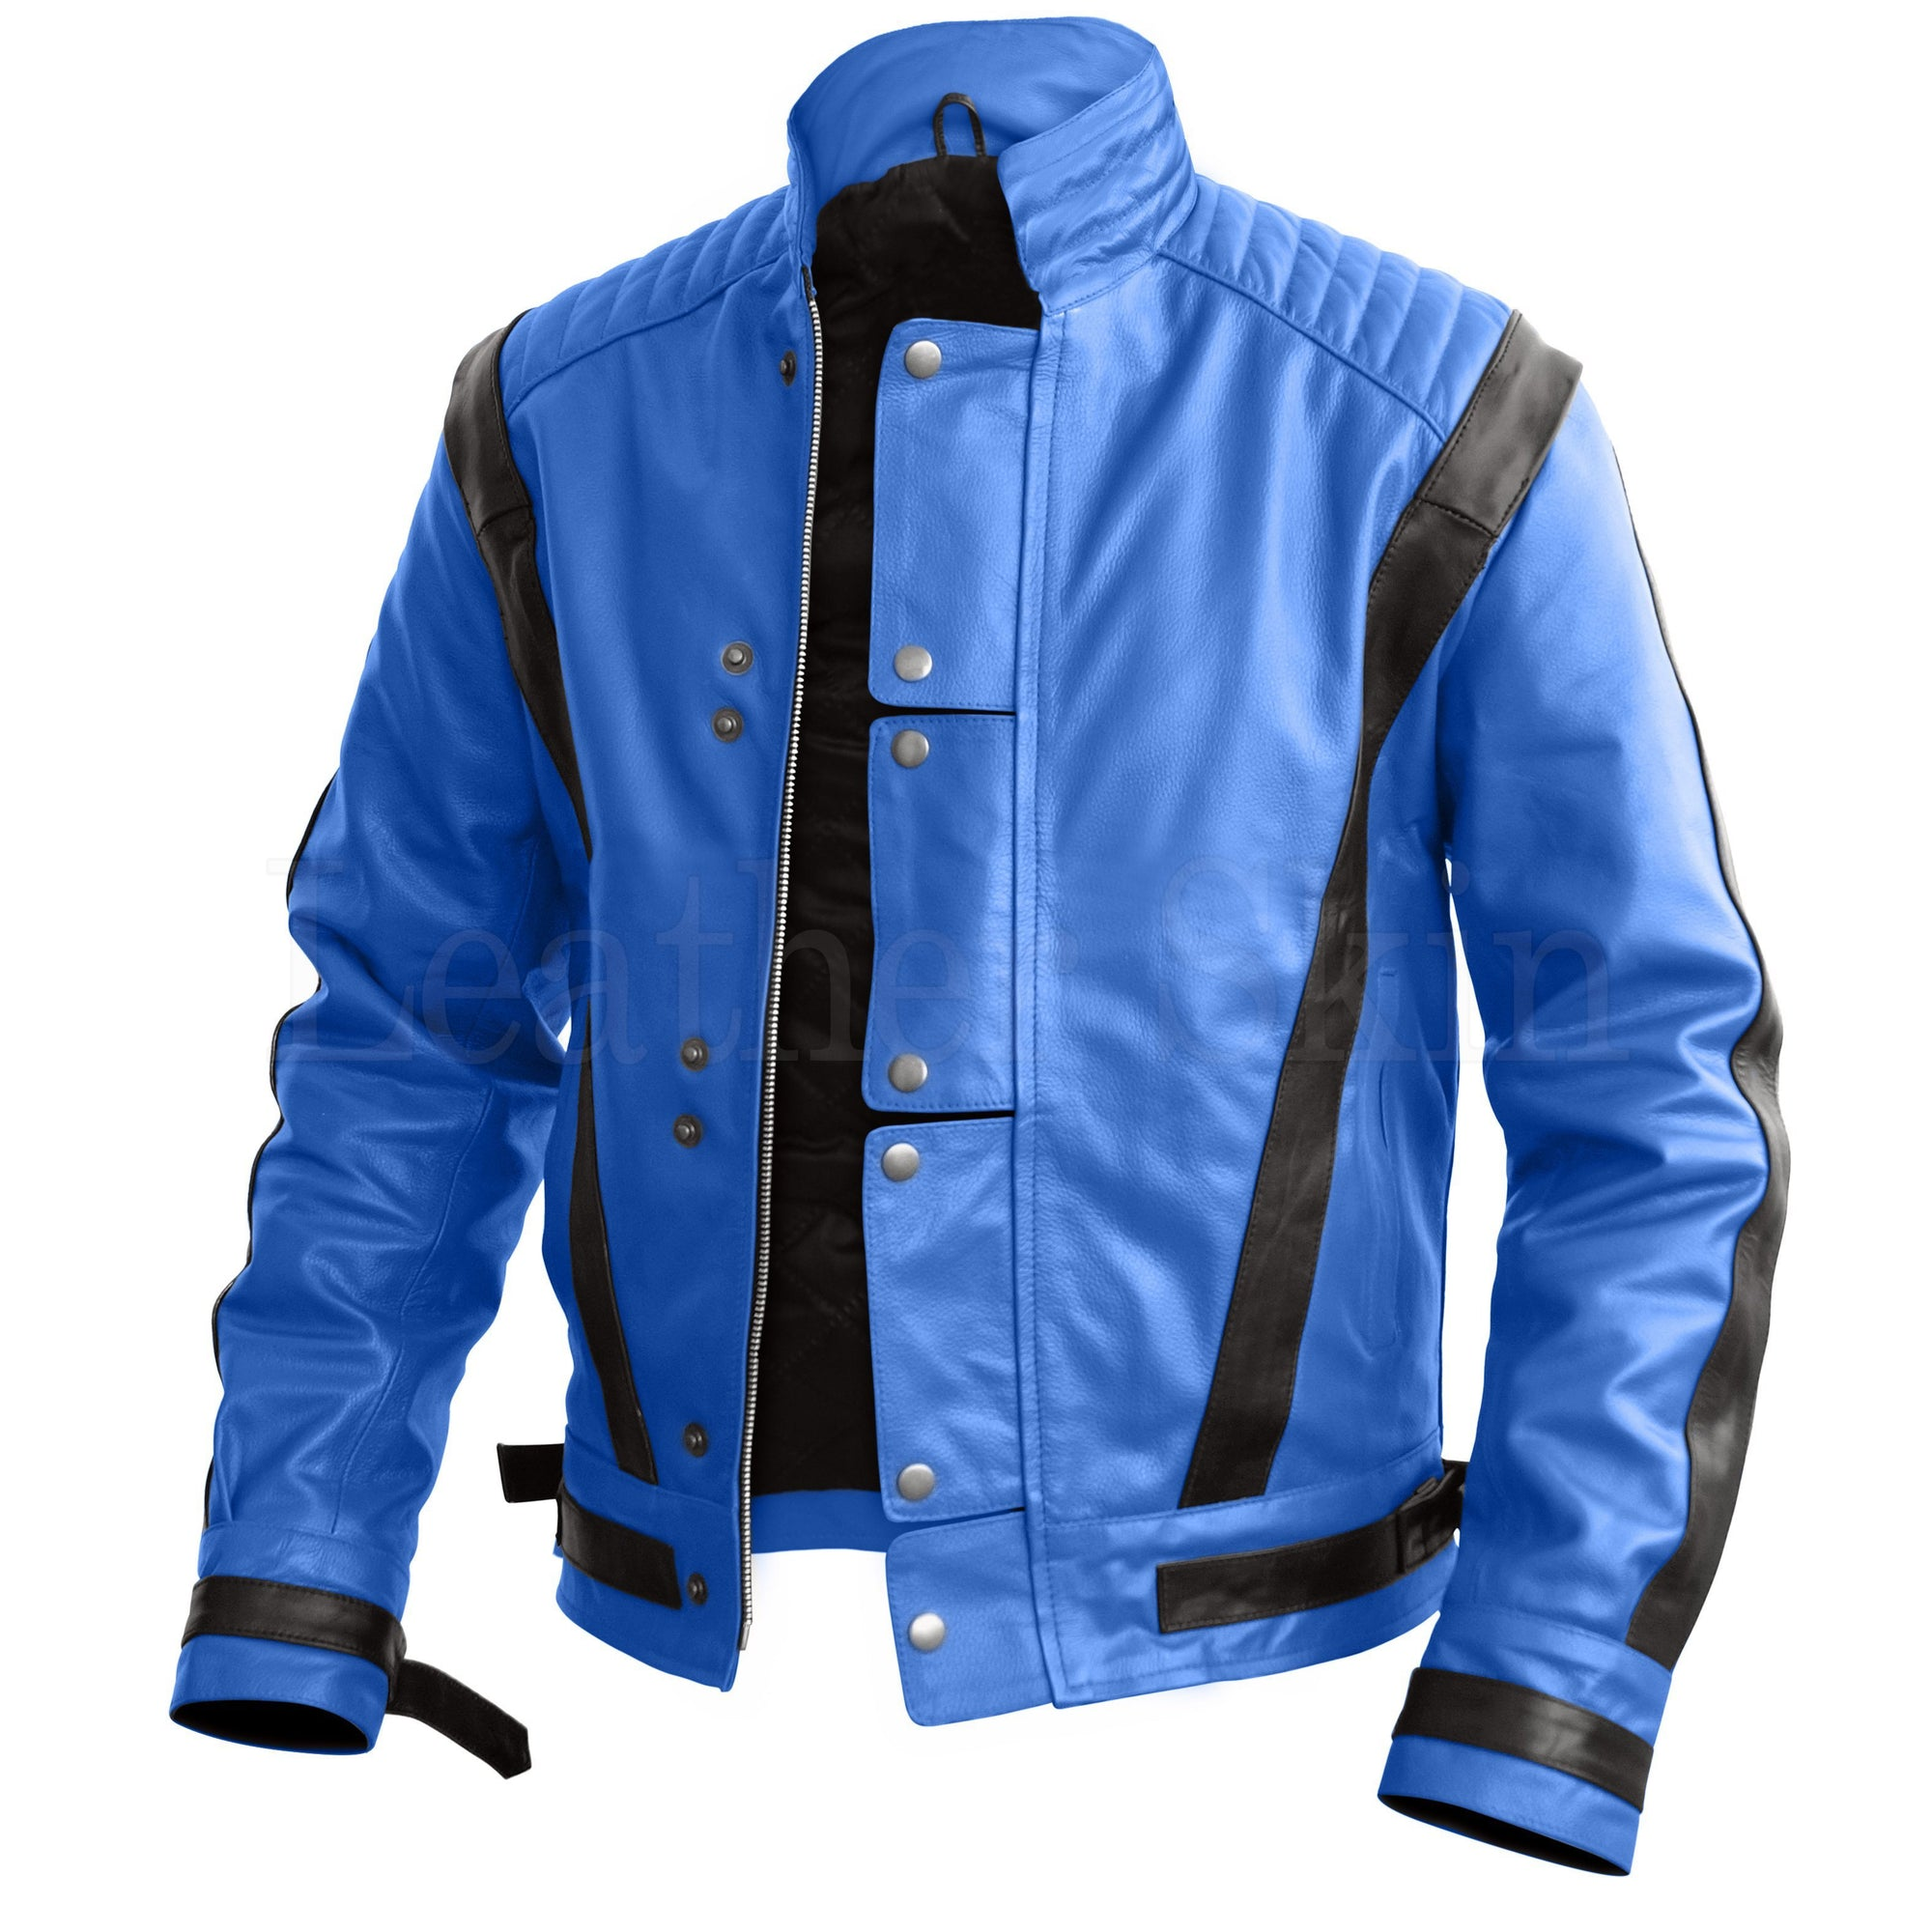 Michael Jackson Blue Leather Jacket for Men Thriller